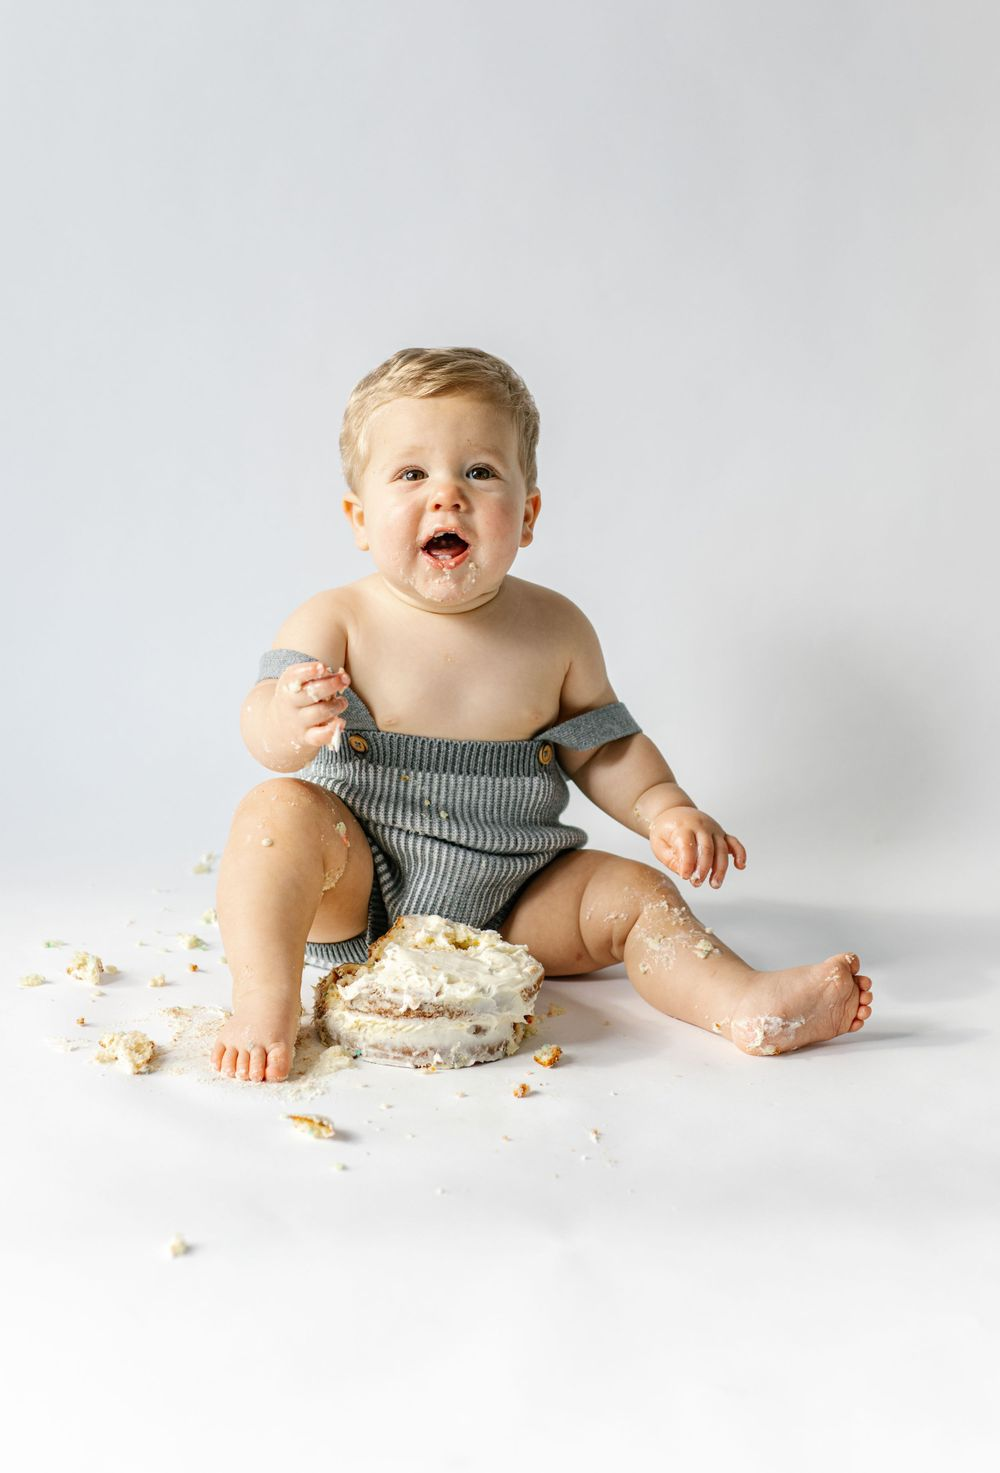 Baby Cake Smash Photographer Milwaukee, Wisconsin